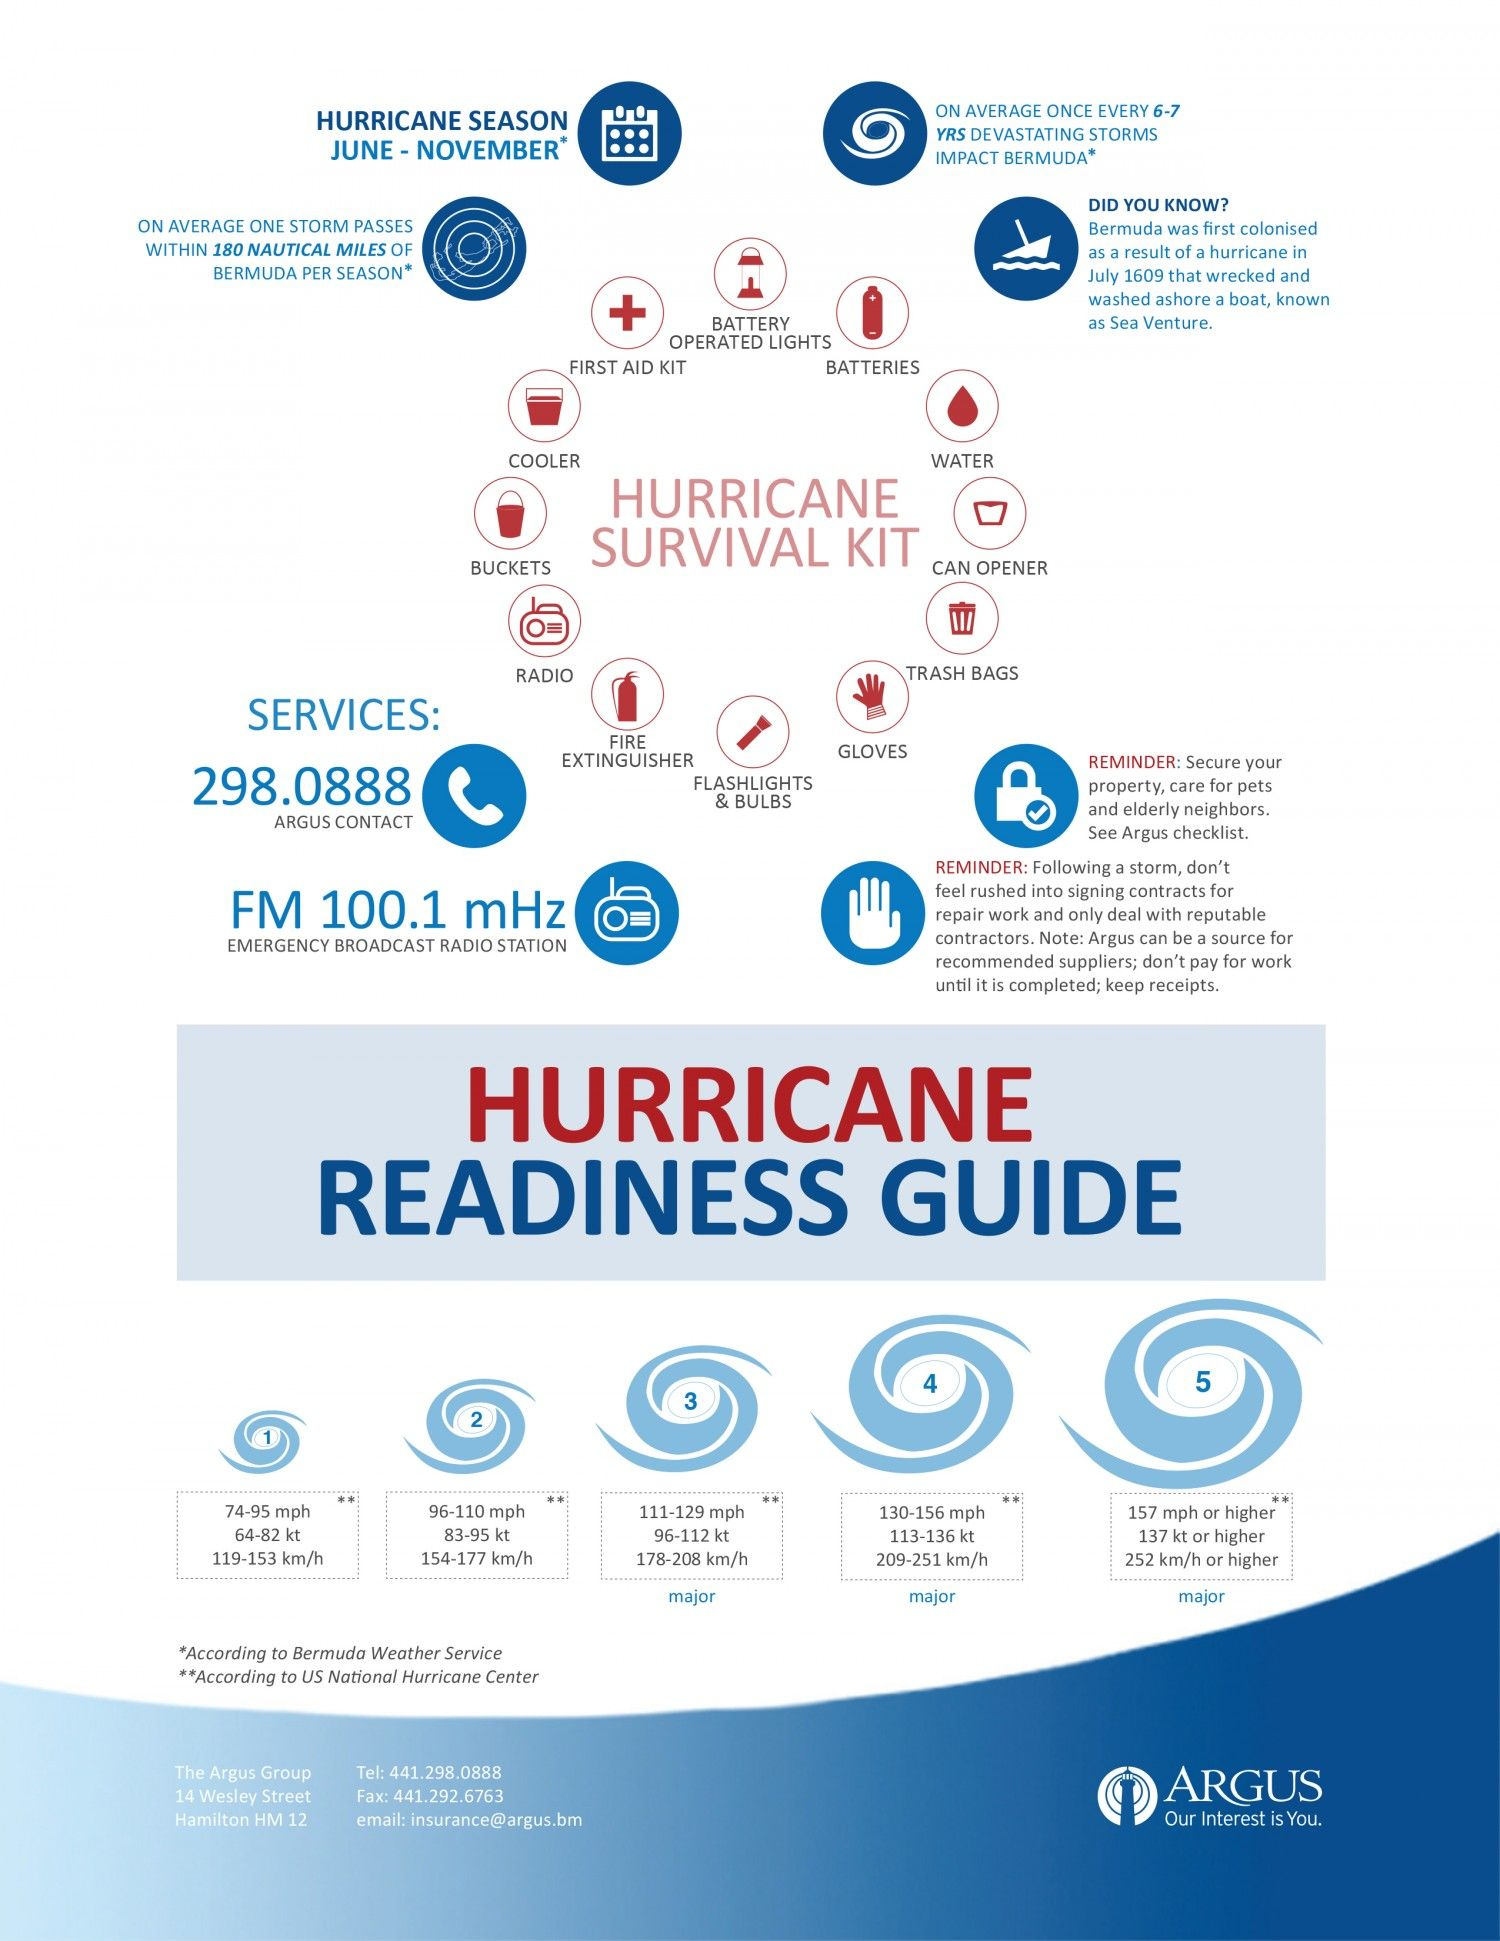 Hurricane Readiness Guide Infographic Hurricane Hurricane Season Hurricane Preparedness